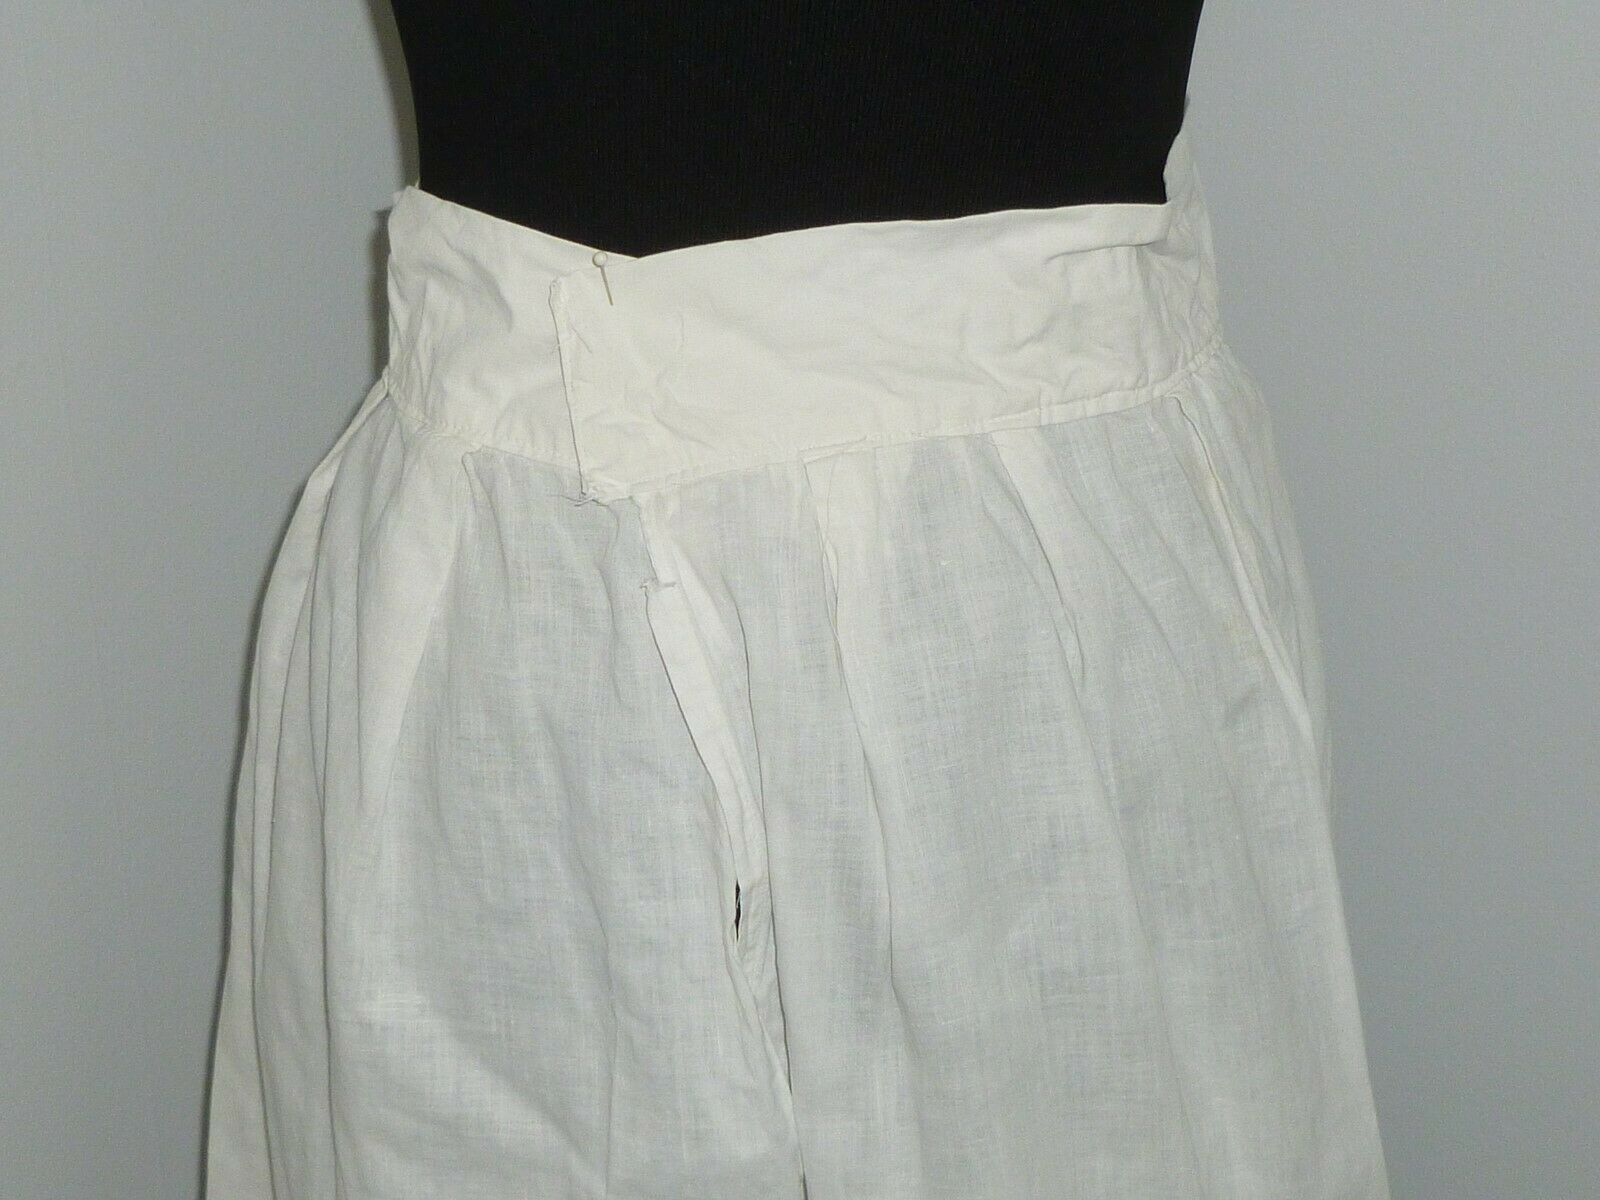 Antique LINEN Skirt~Embroidered Eyelet Lace Petti… - image 5